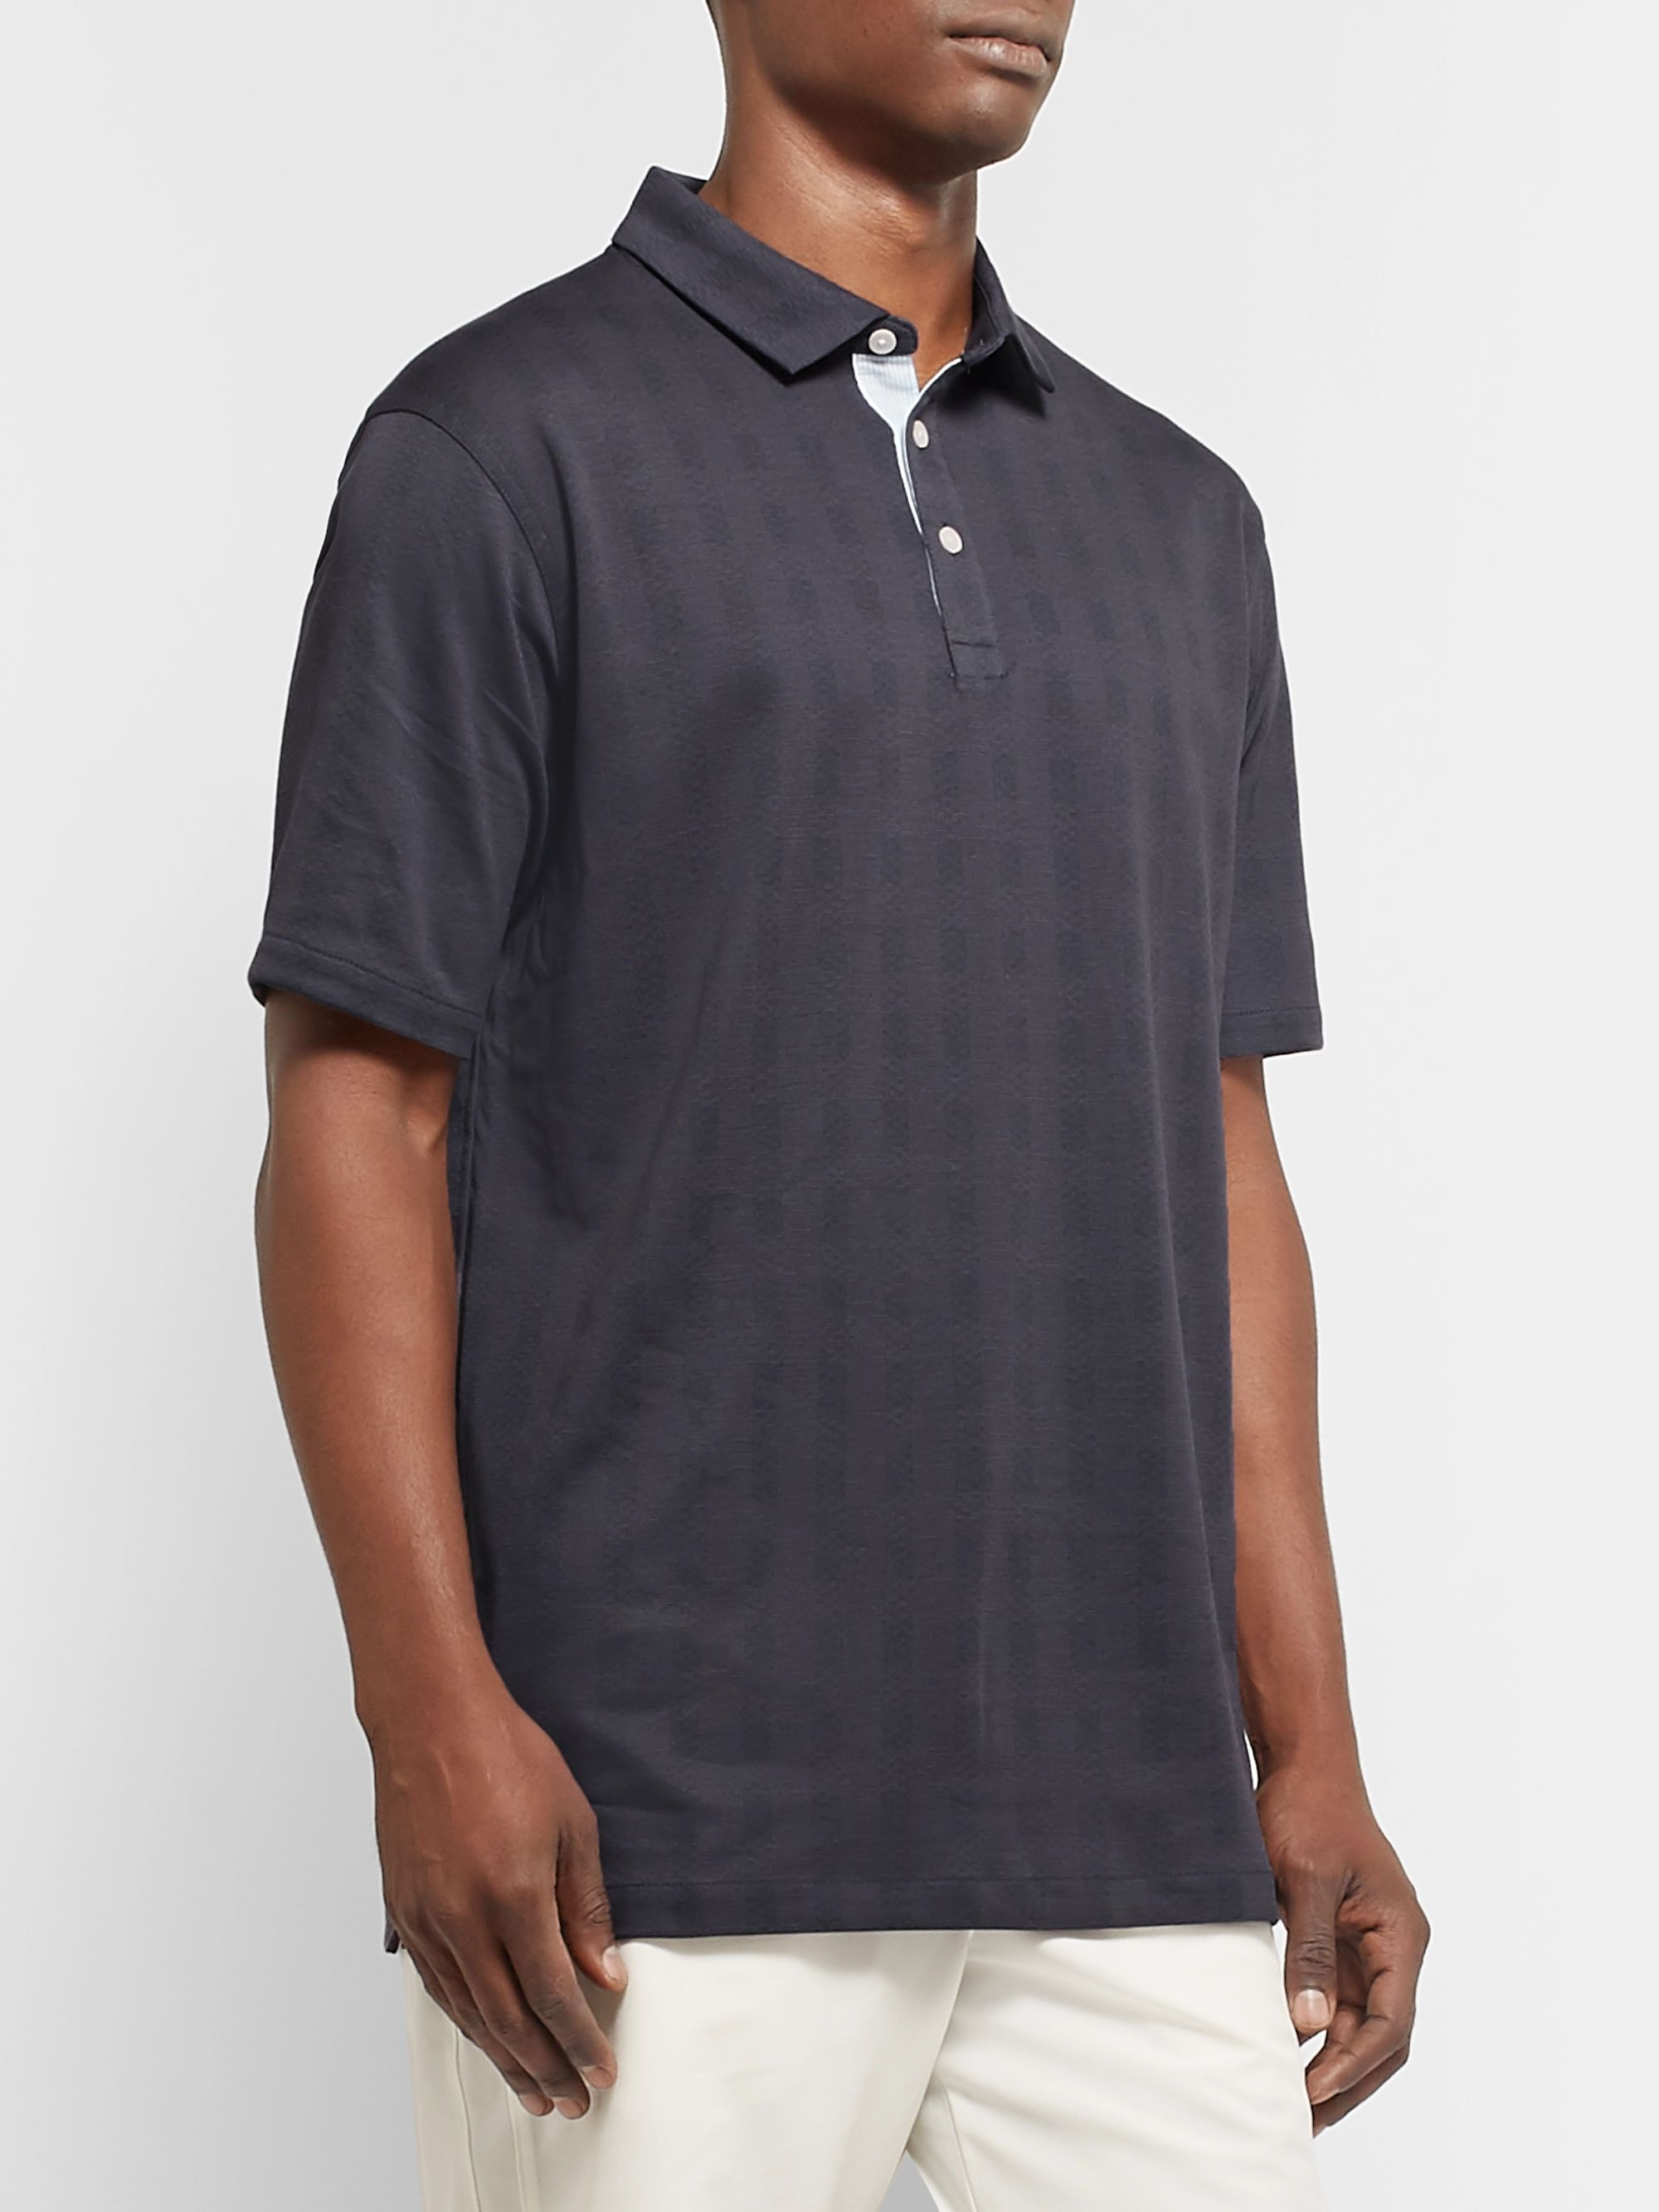 Nike Golf Player Checked Dri-FIT Polo Shirt